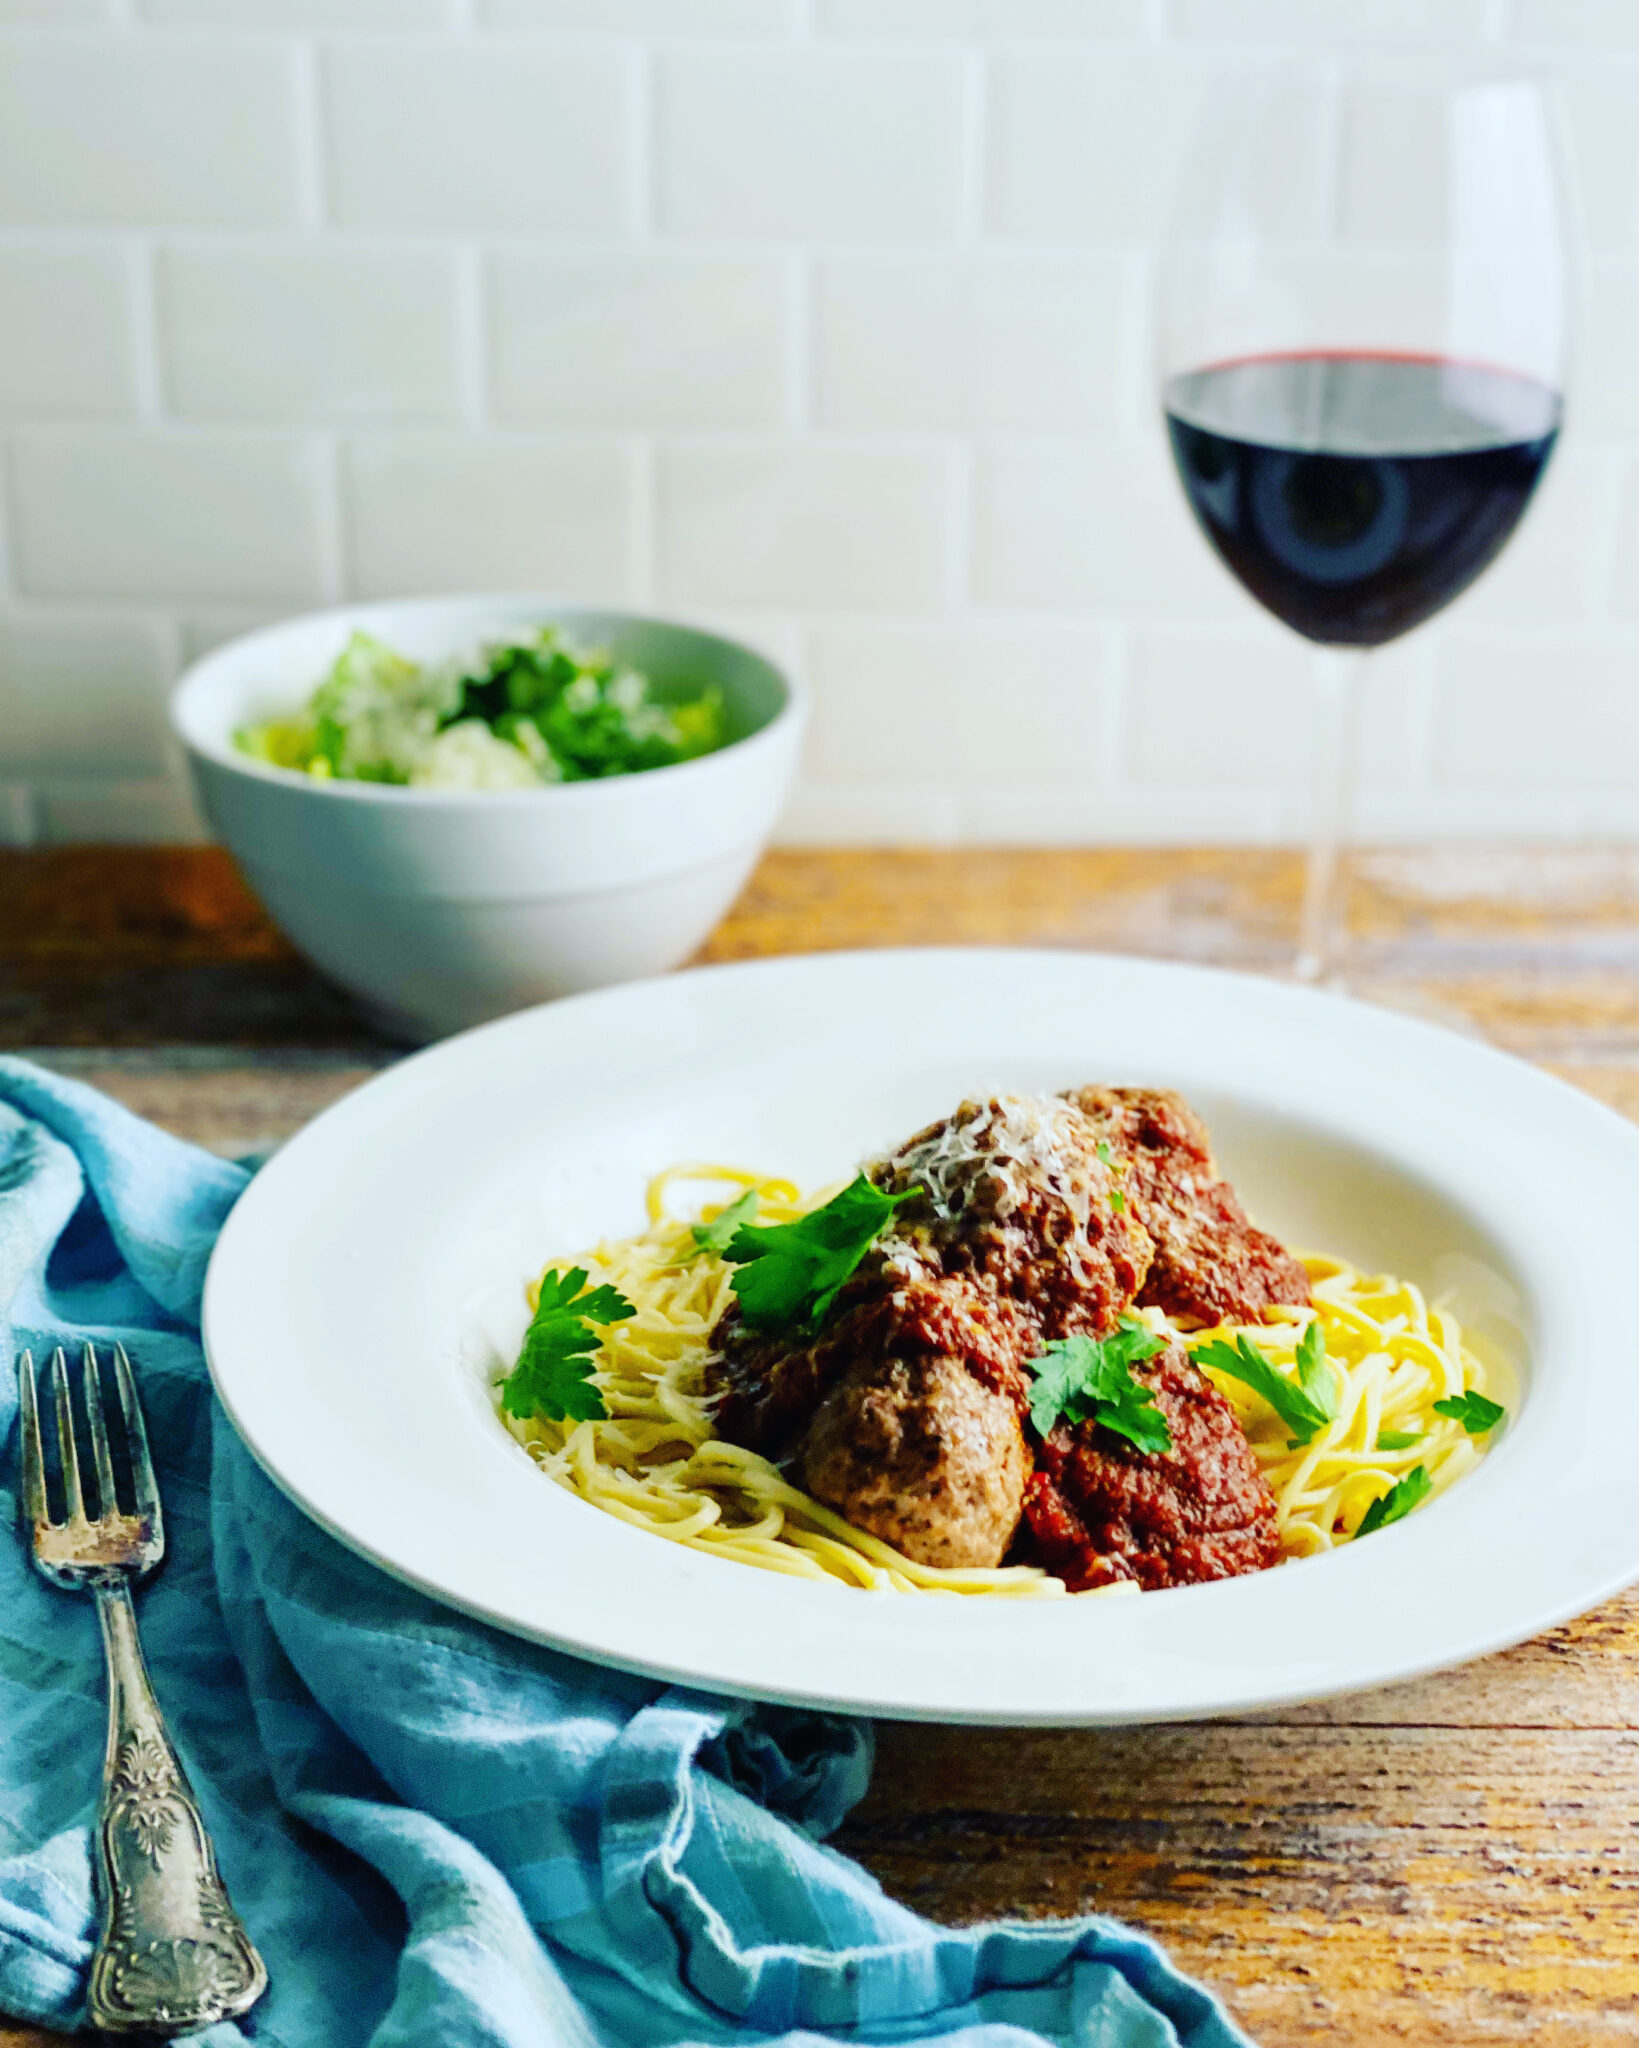 Tomato sauce and meatballs on pasta with a salad and a glass of red wine